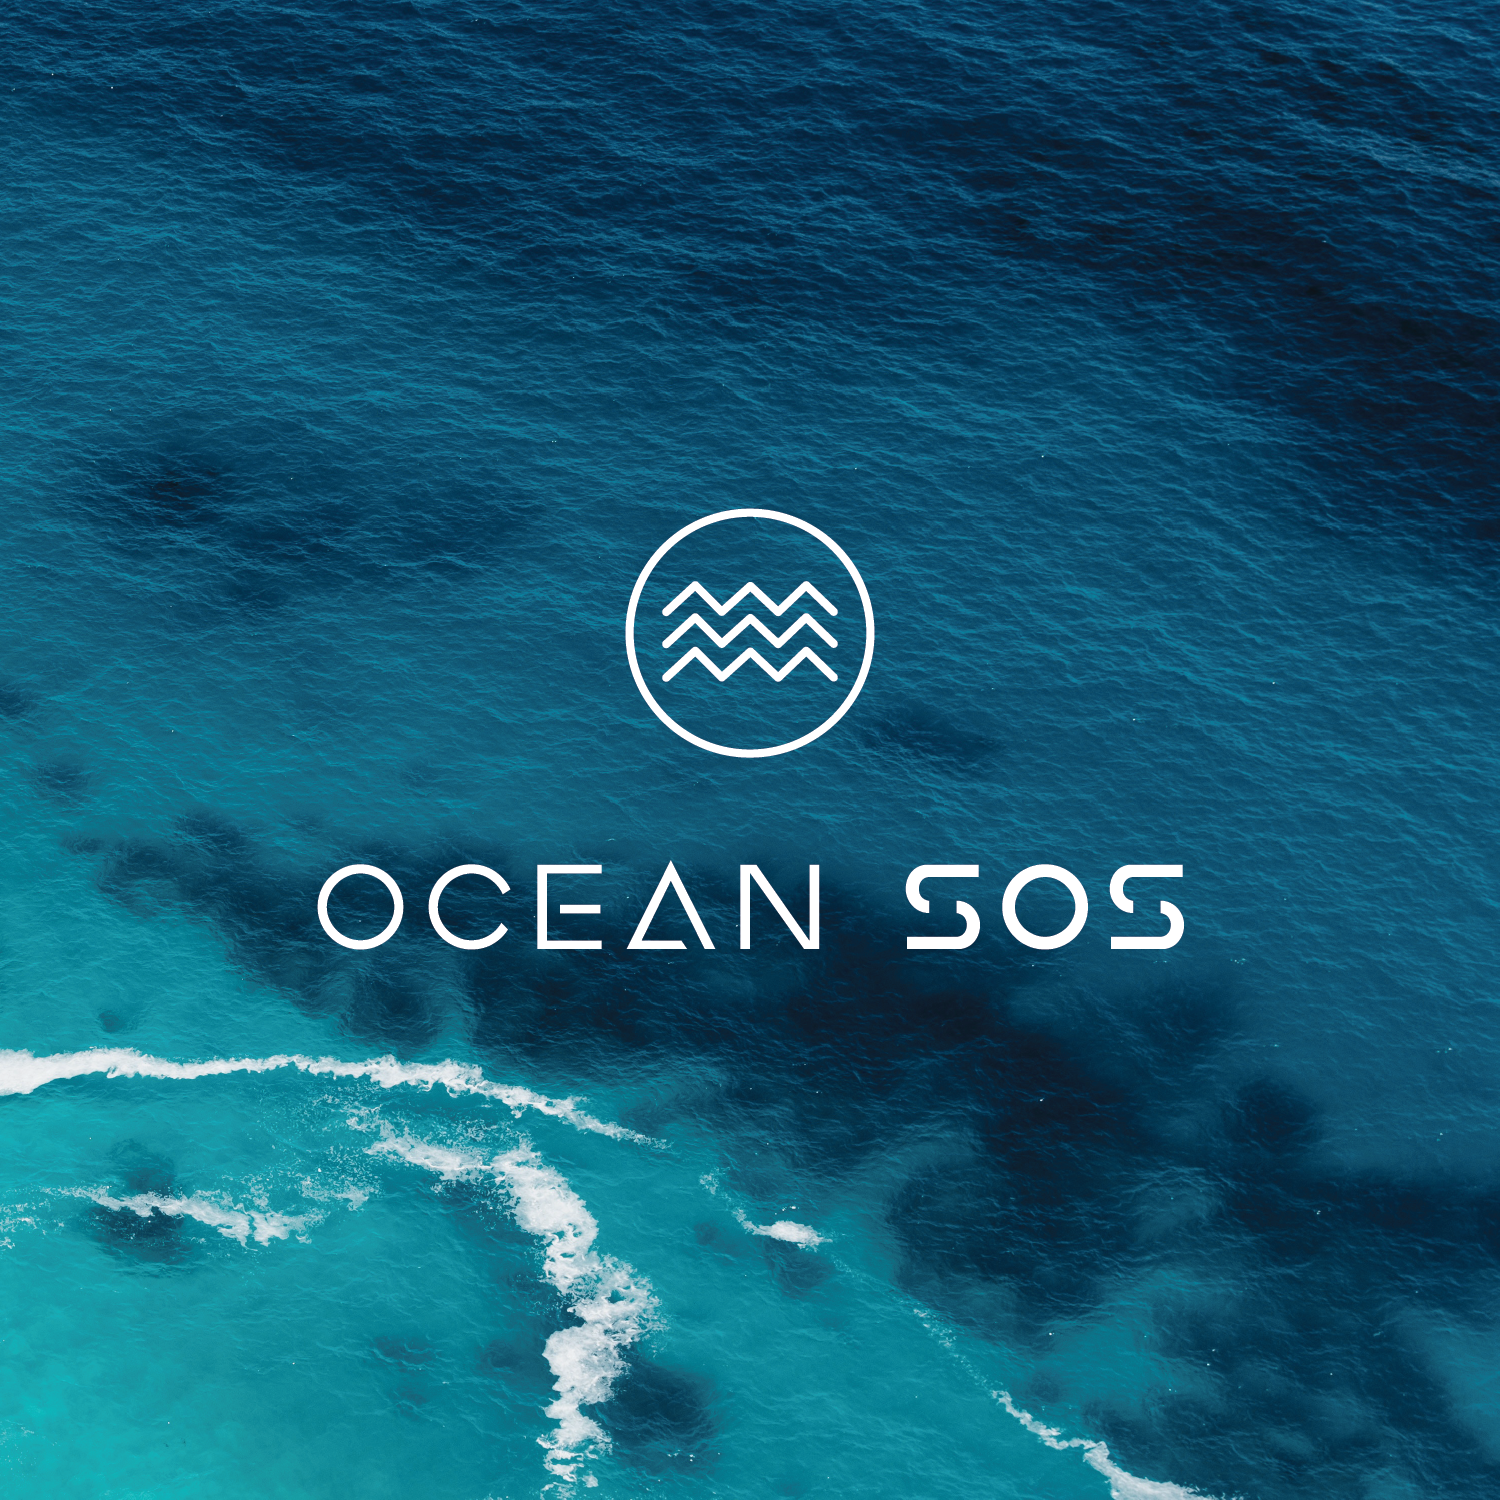 Ocean SOS - I am the co-founder and Director of Content of an Ocean Summit Series known as OceanSOS. Our inaugural events transpired in Manado City - Indonesia, San Francisco, and Miami. Our framework worked to integrate both local and international officials, funders, innovators, academics, and other stakeholders to create a global network among regenerative ocean initiatives with a focus on bridging next-gen approaches in technology, decentralization, community governance, blended funding, and cultural integration. We partnered with Schmidt Marina Technology Partners on content curation as well as with the Sustainable Oceans Alliance (SOA) to create an SOA Indonesia Chapter led by local youth ocean initiatives.